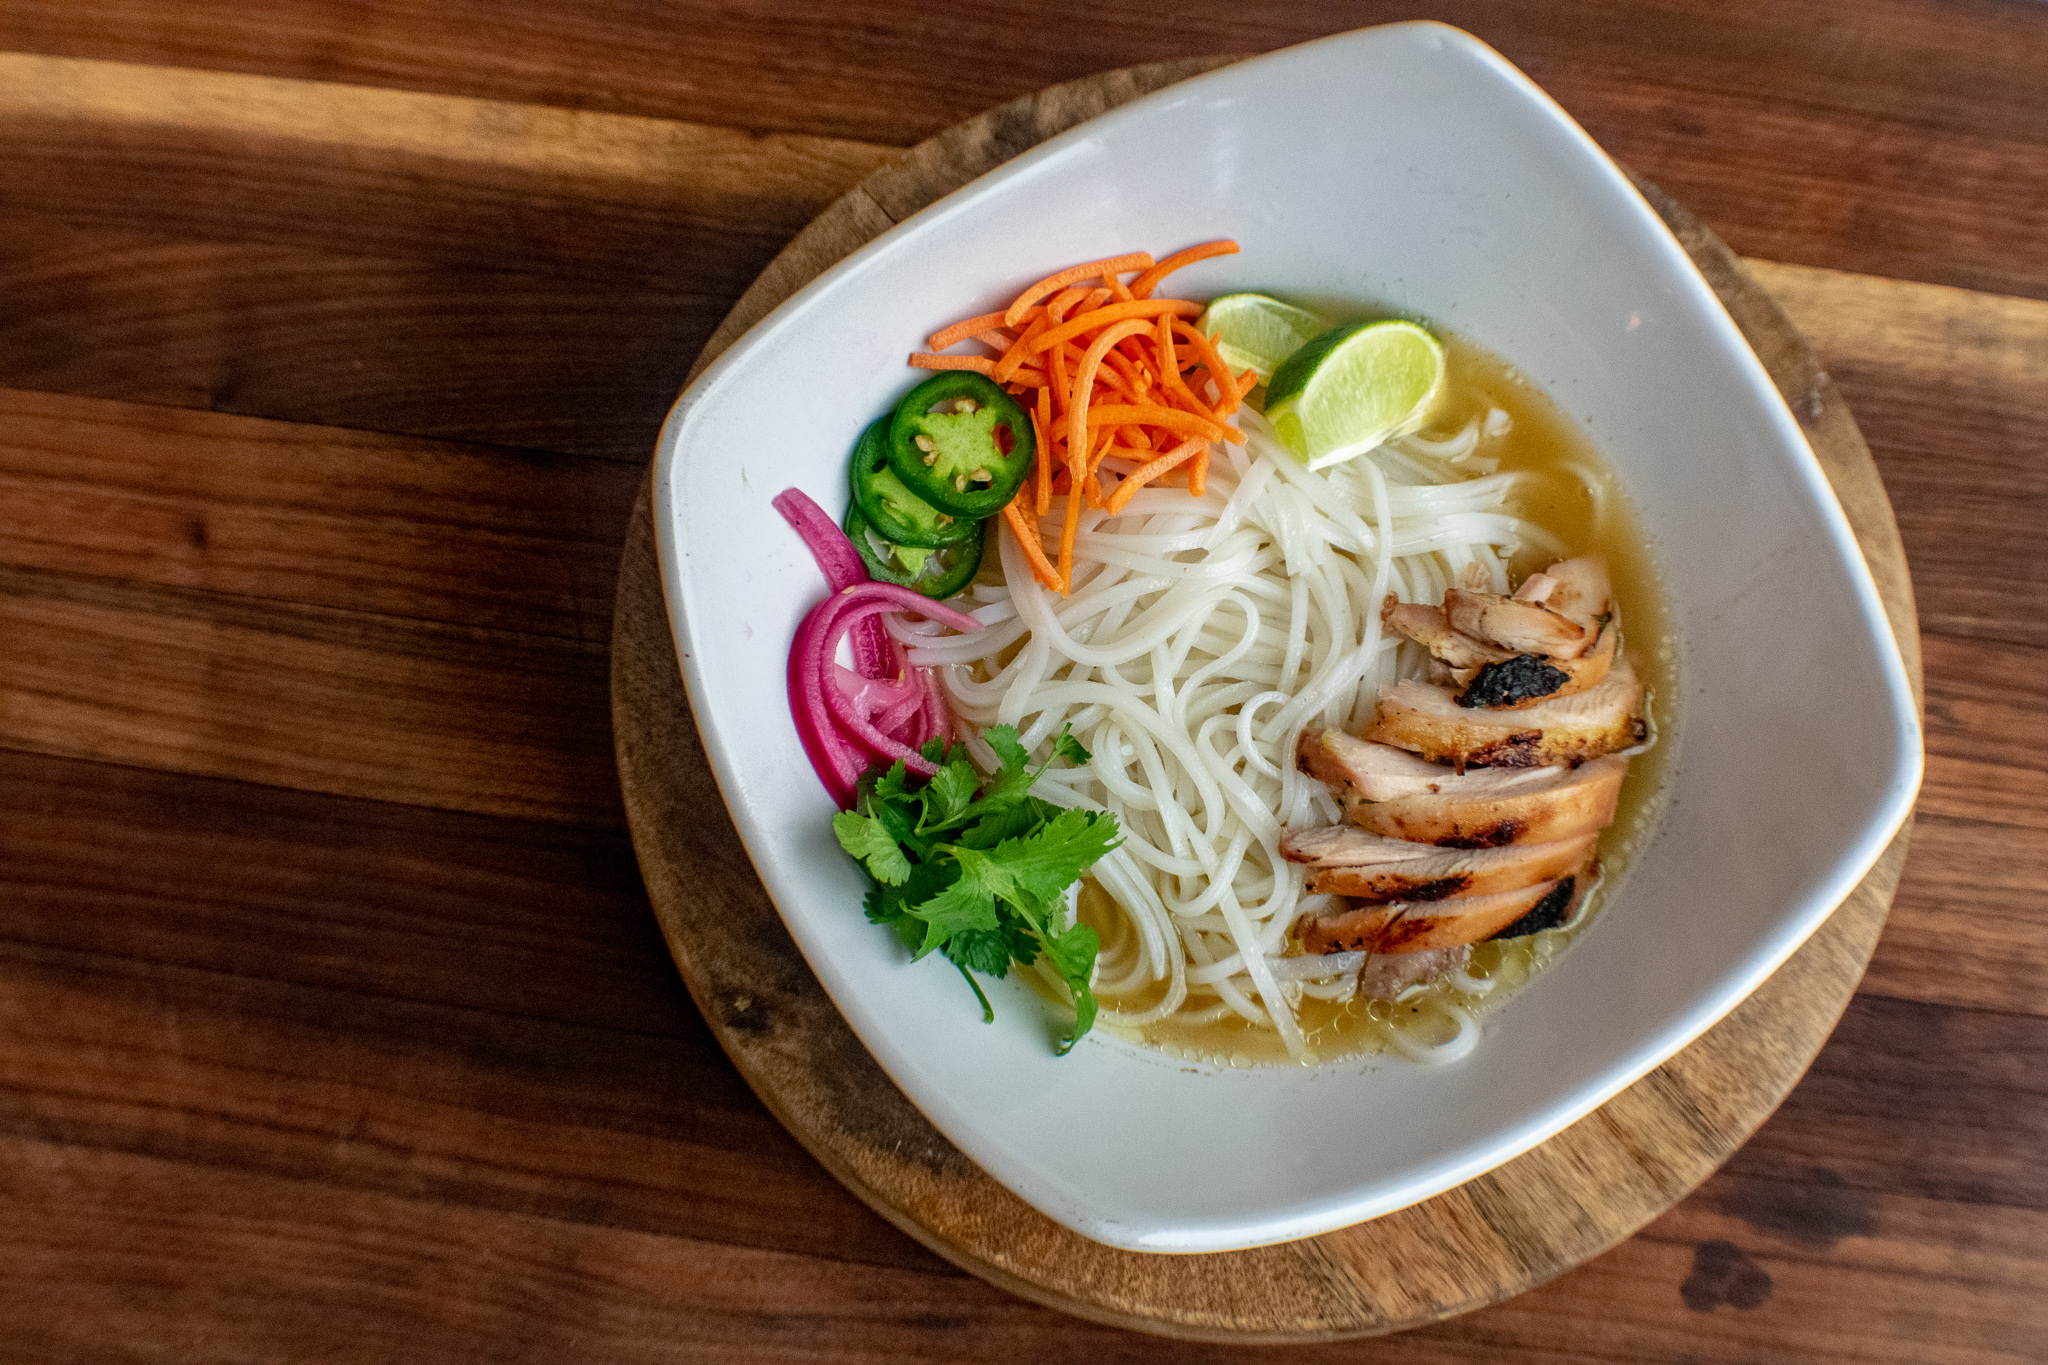 Lemongrass-Chicken Phở